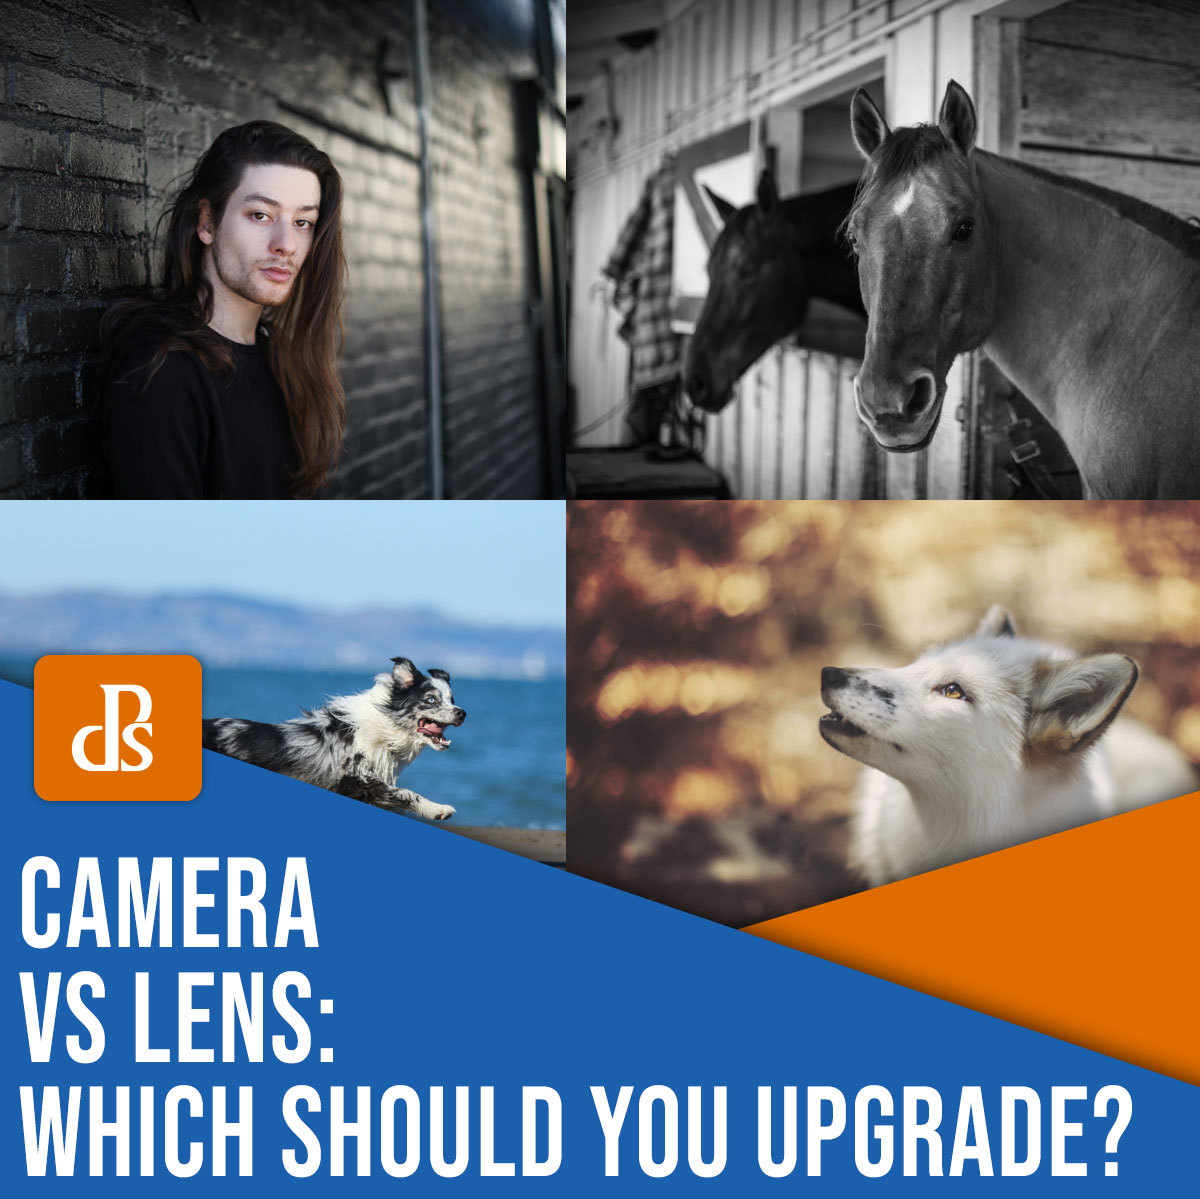 camera vs lens: which should you upgrade?